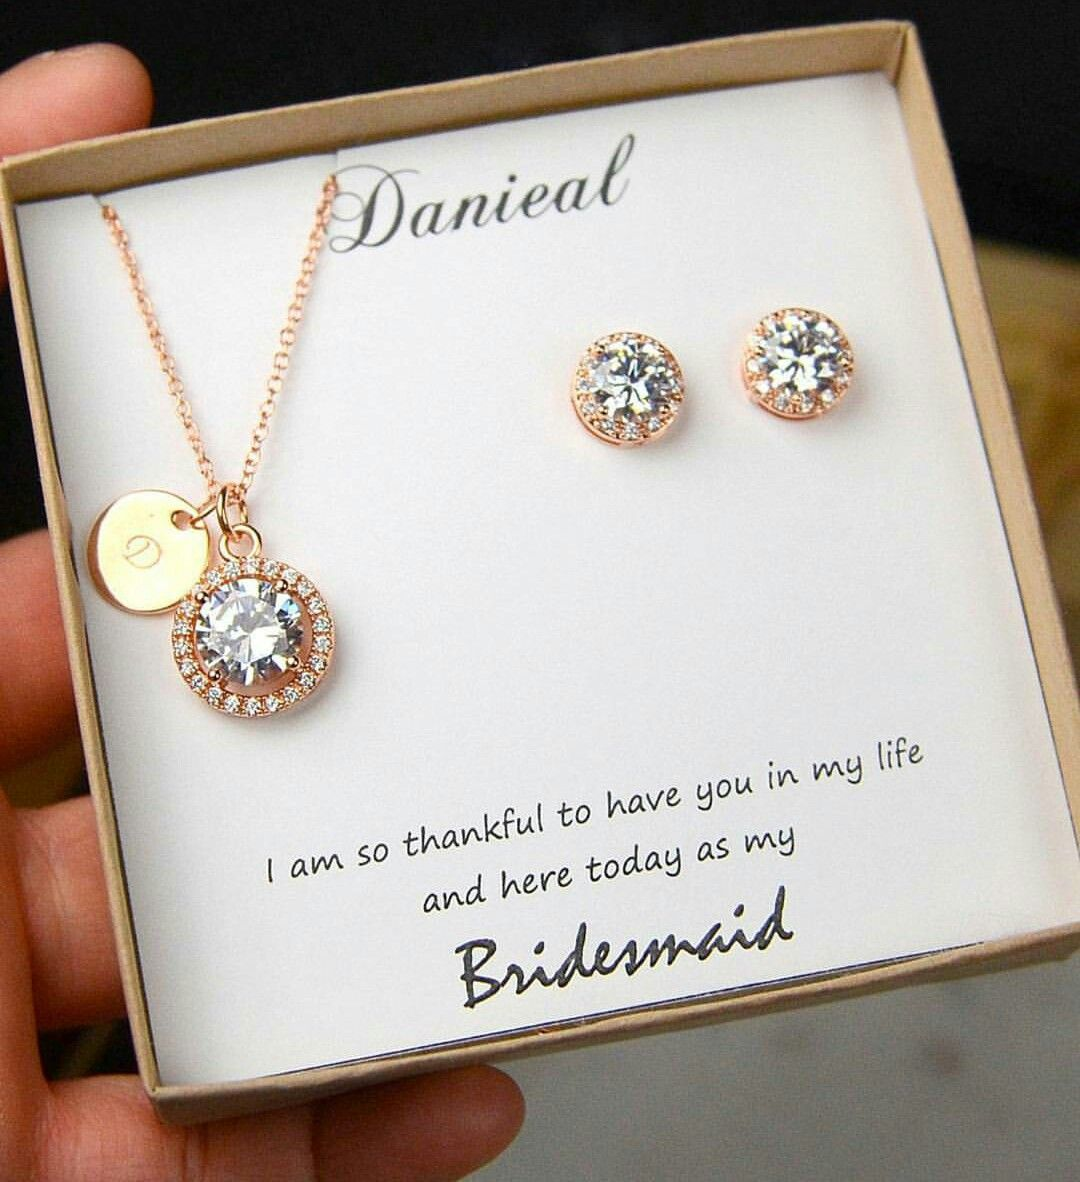 Gifts Bridesmaids Beautifully Pinterest Gift Wedding and